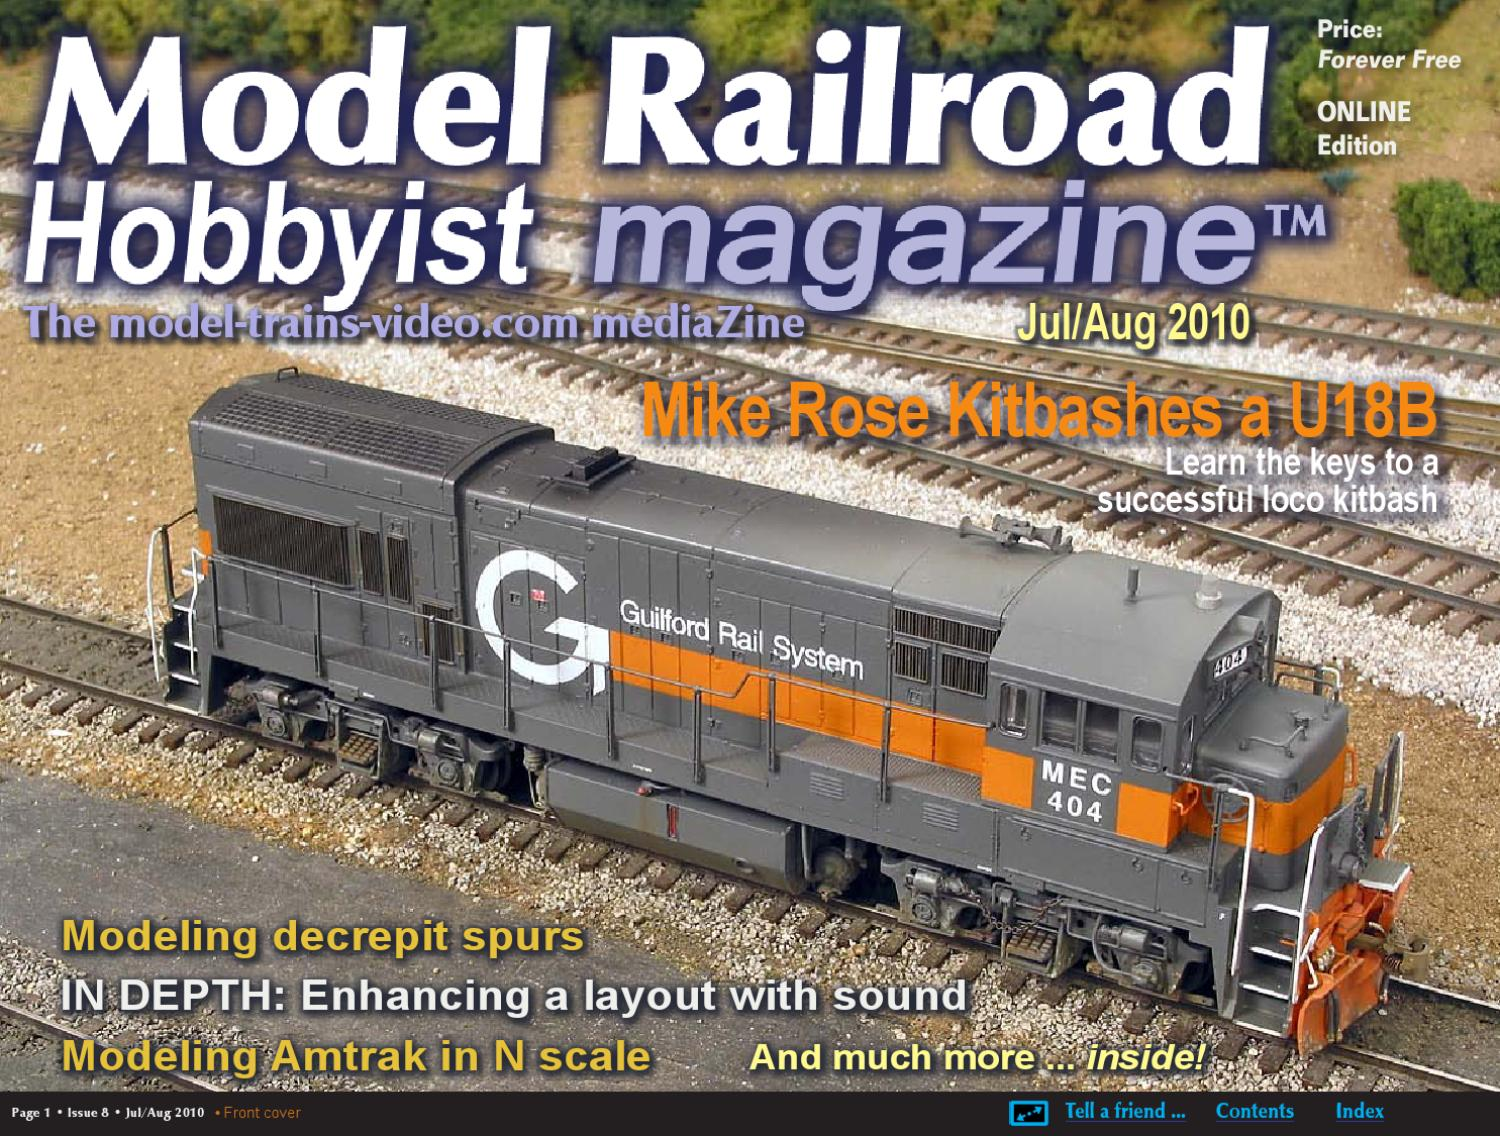 hight resolution of mrh jul aug 2010 issue 8 by model railroad hobbyist magazine issuu model railroader magazine model railroading model model train wiring